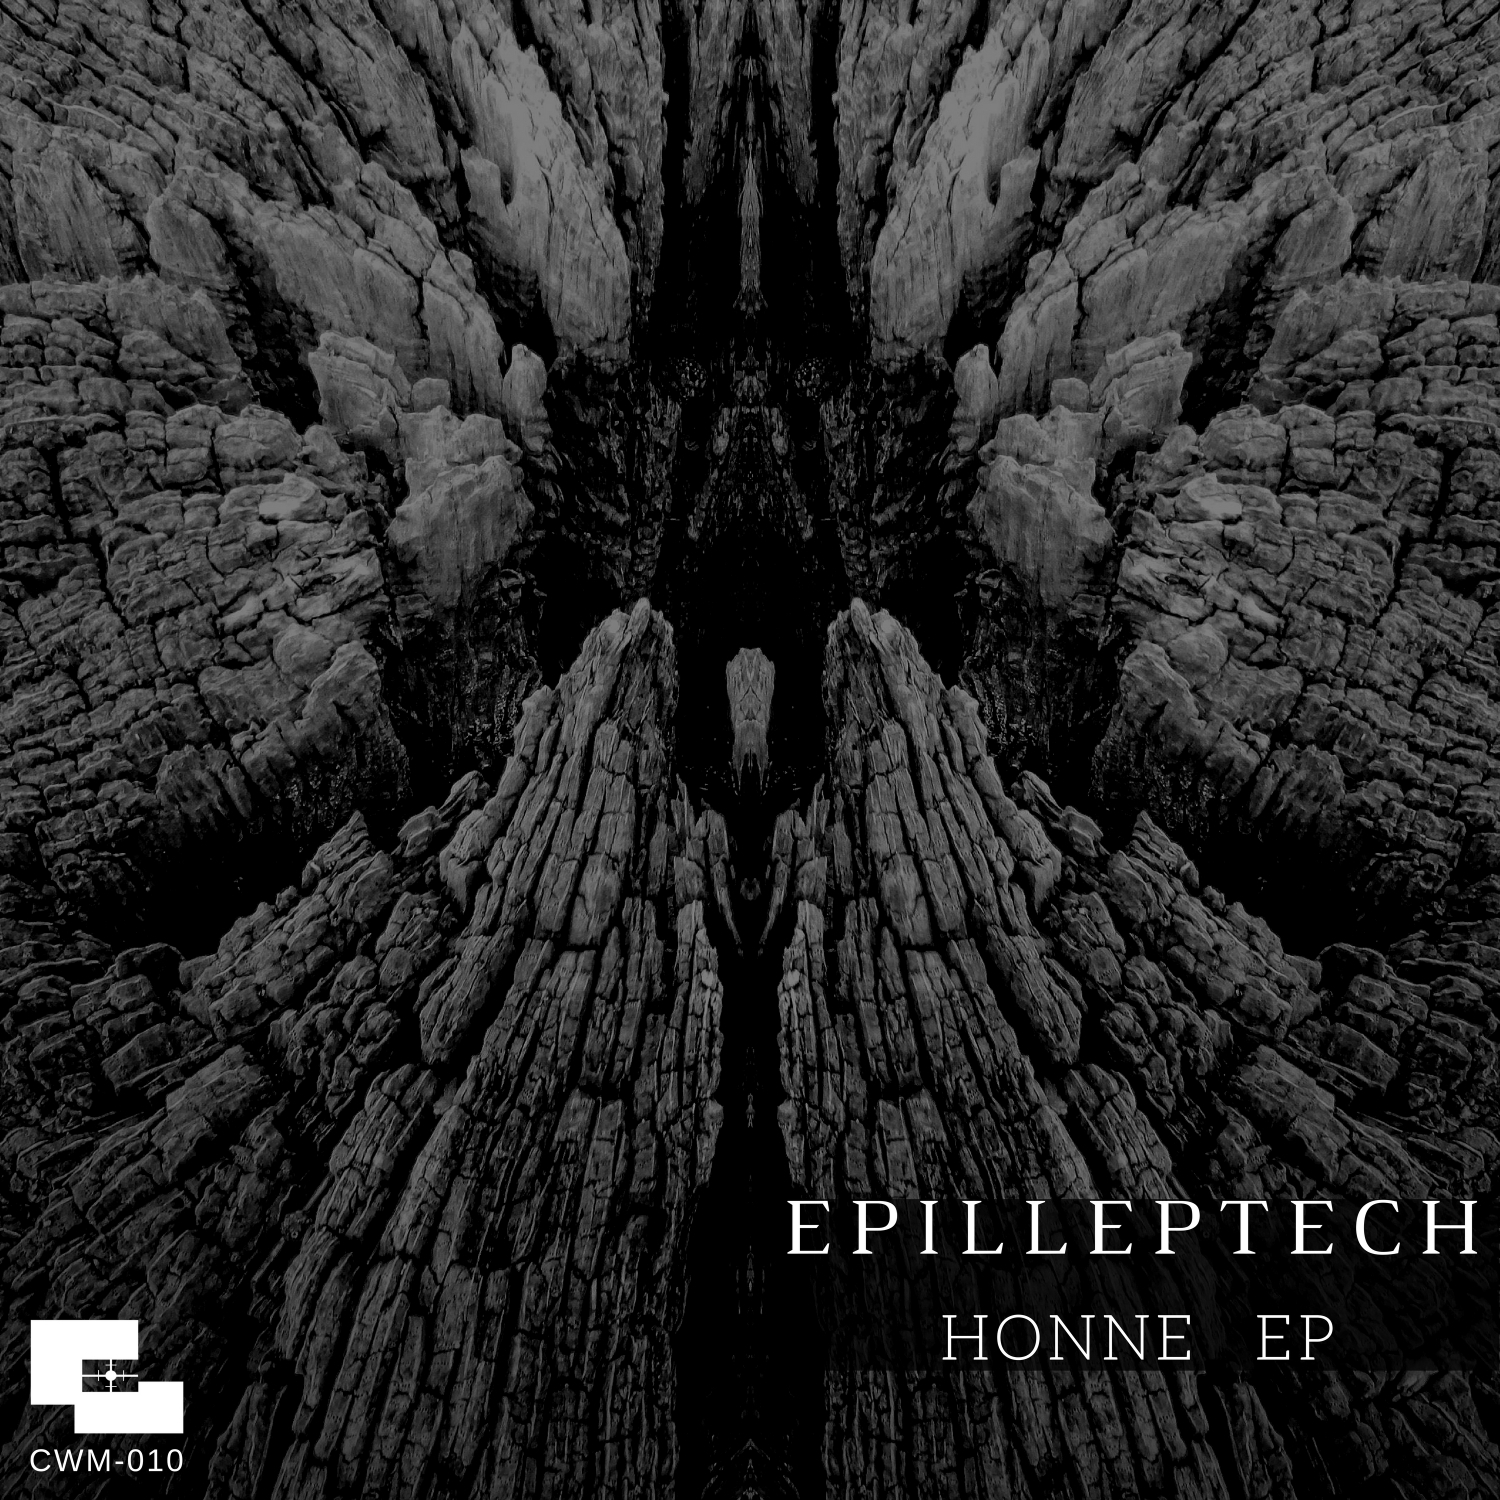 Epilleptech - Jonin (Original Mix)